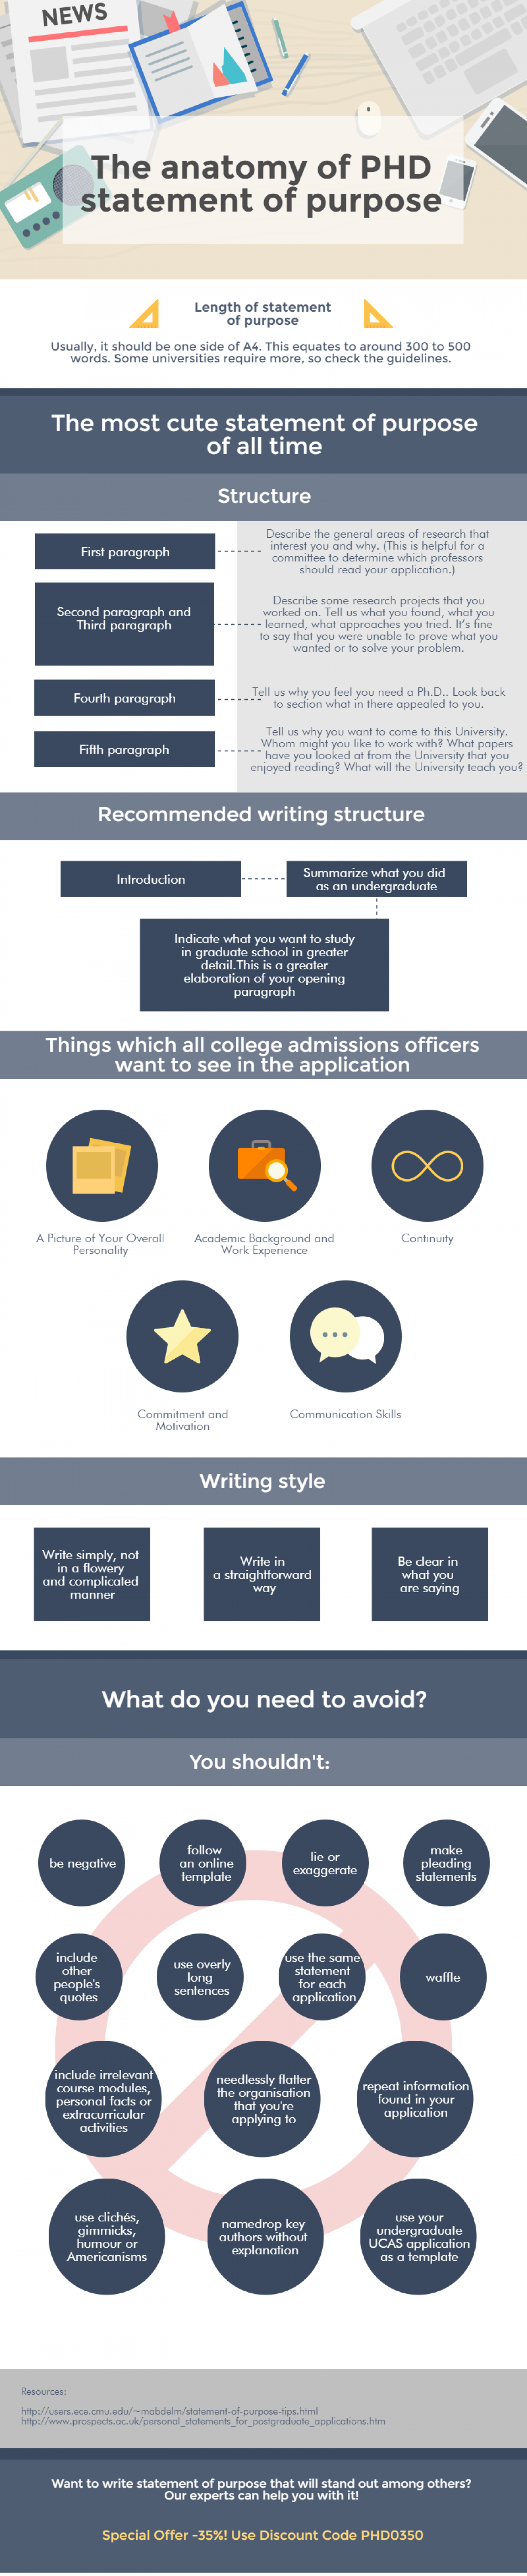 The Anatomy of PhD Statement of Purpose | Visual.ly